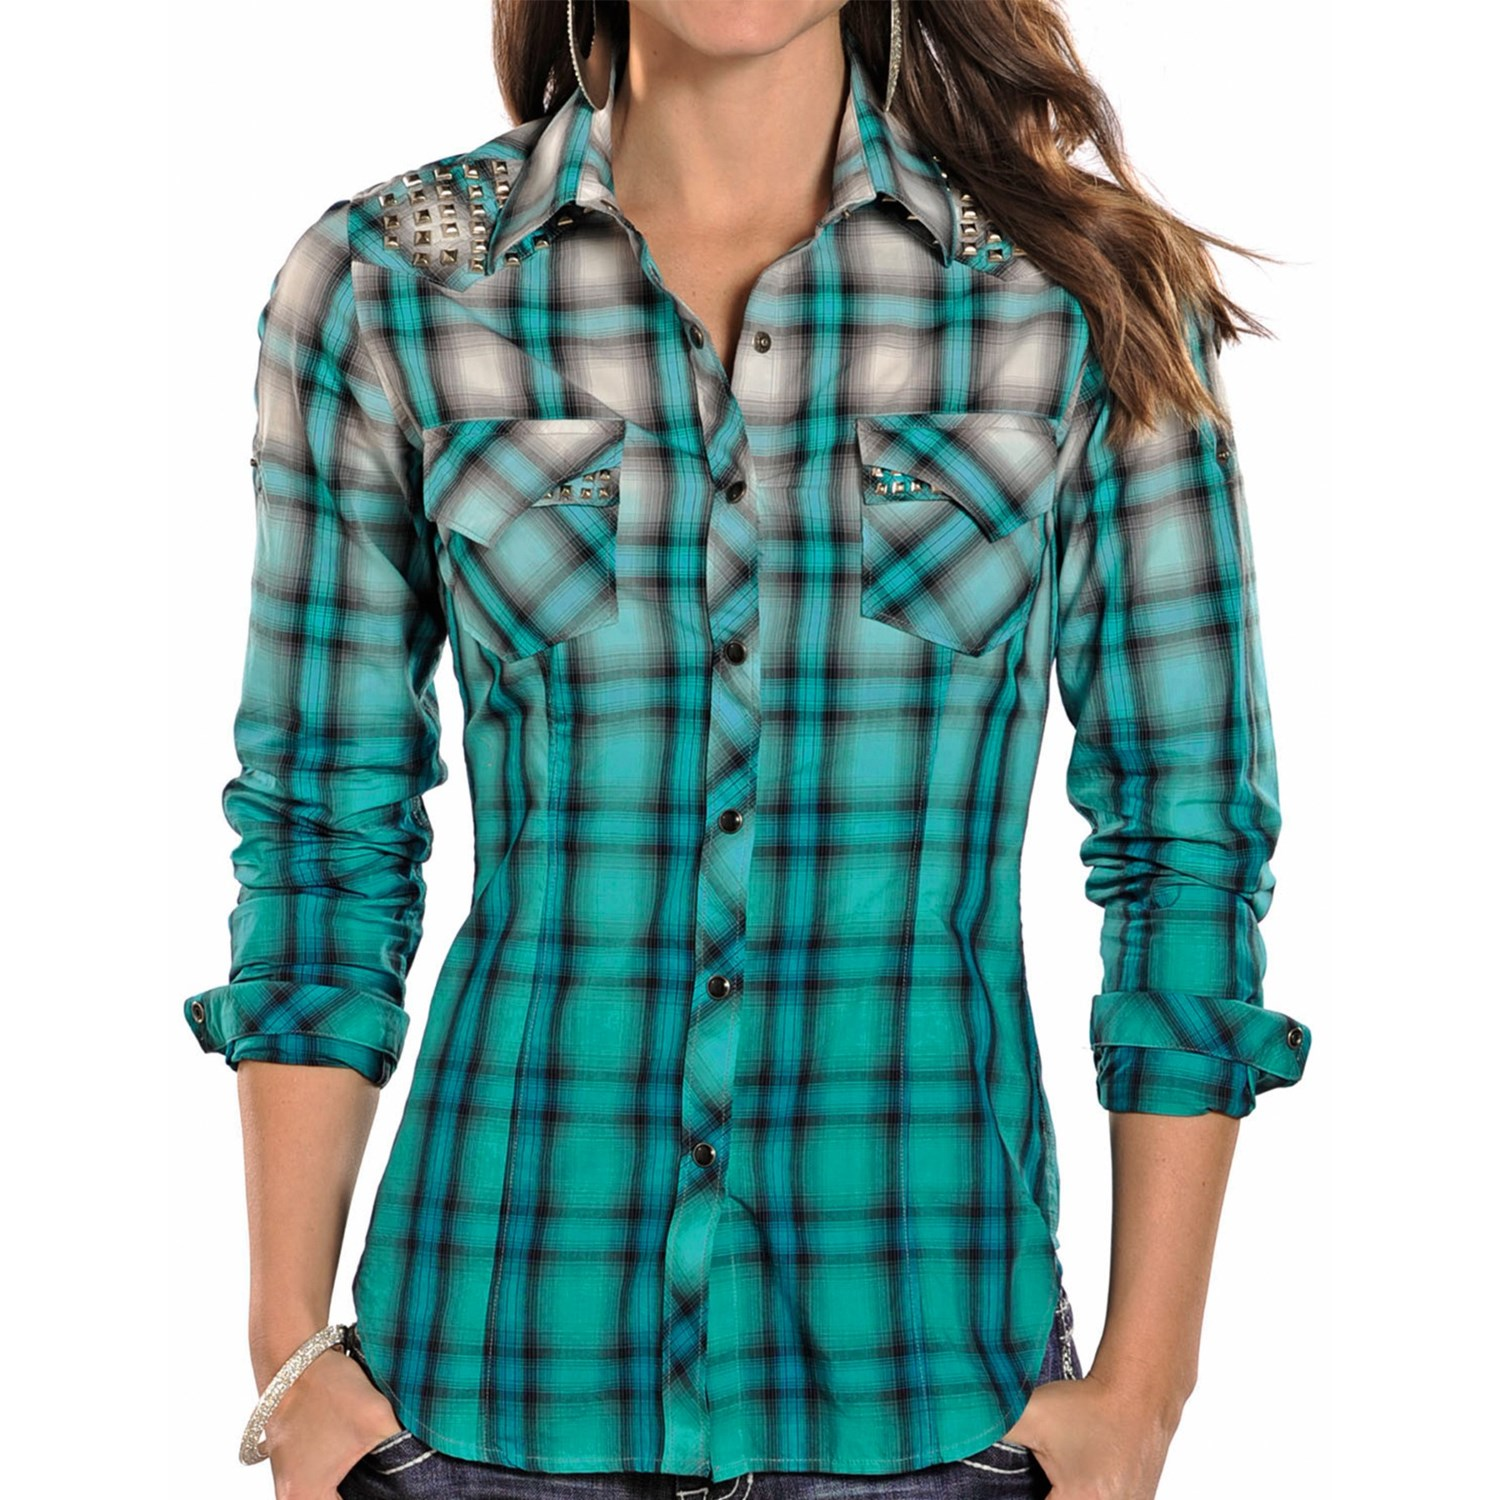 Rock Roll Cowgirl Dip Dyed Ombre Plaid Western Shirt